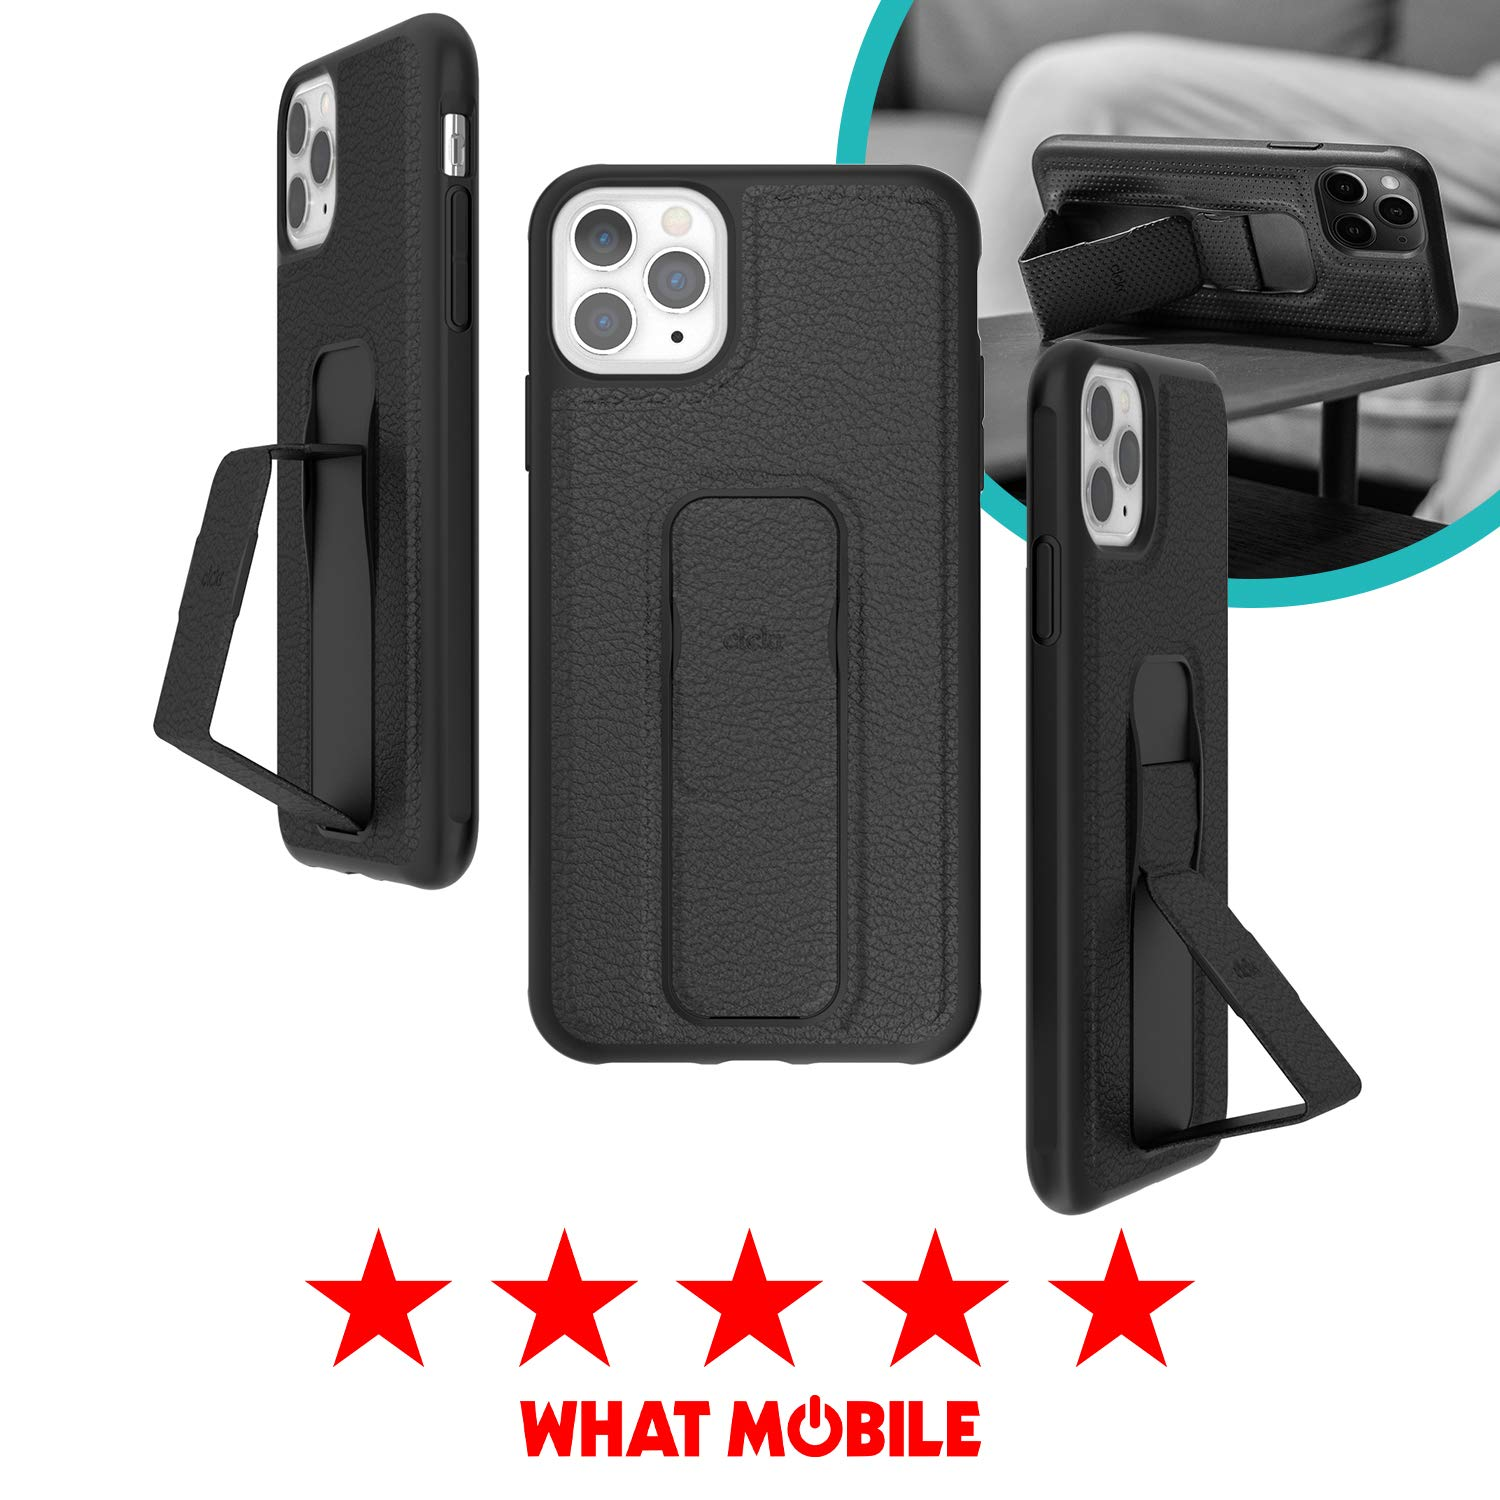 CLCKR iPhone 11 Pro Max Case Cover with Stand for Viewing and Grip - Black Faux Leather